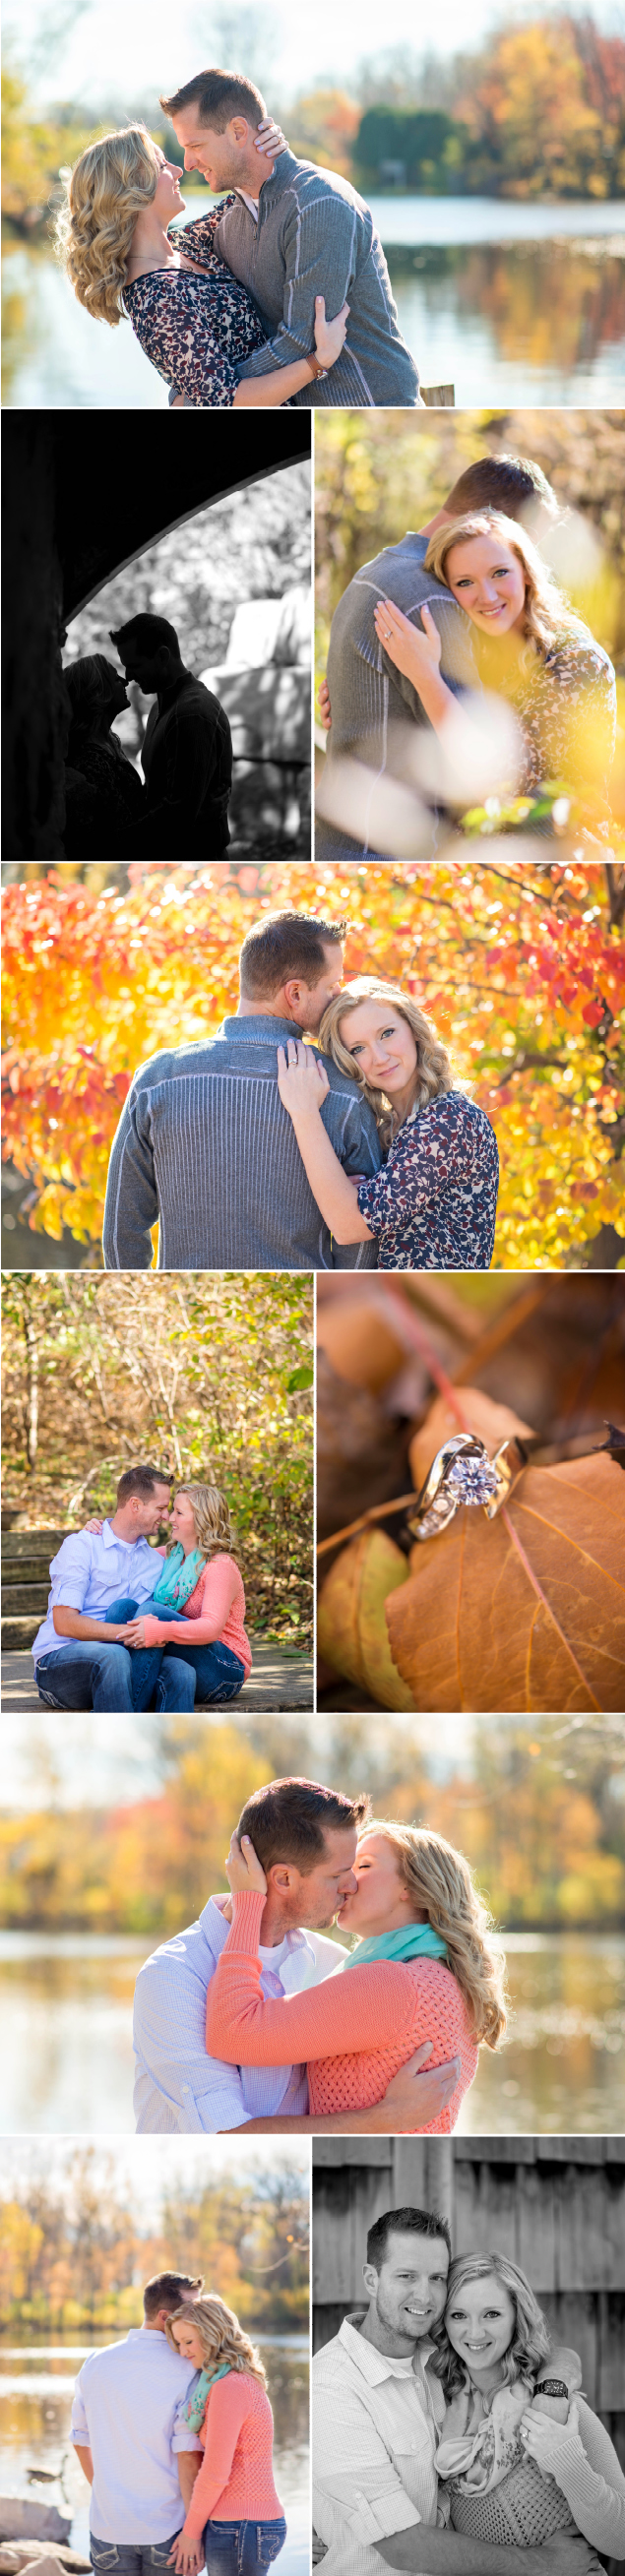 Wildlife_Sanctuary_Engagement_Session_Green_Bay_Wisconsin